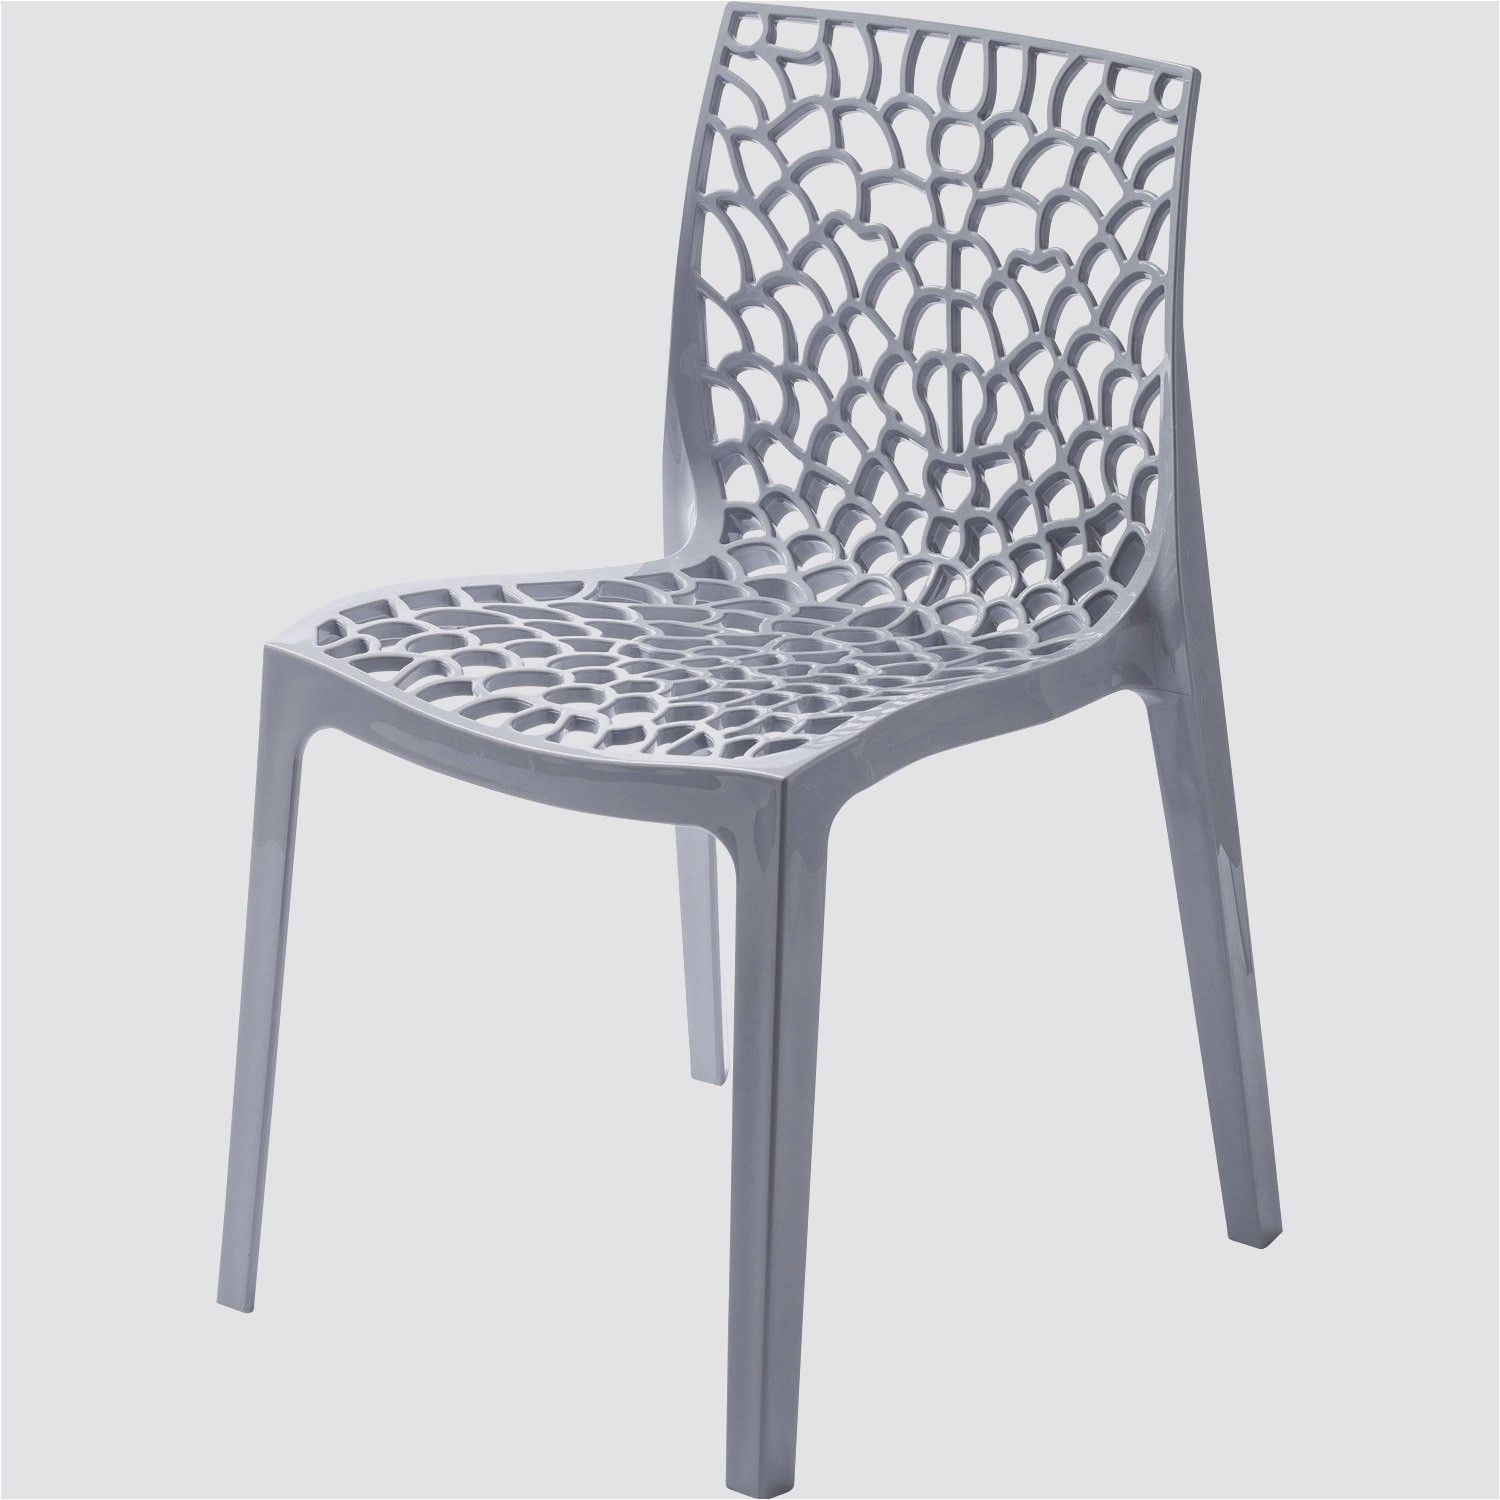 Beautiful Fabriquer Fauteuil Chair Furniture Patio Chairs